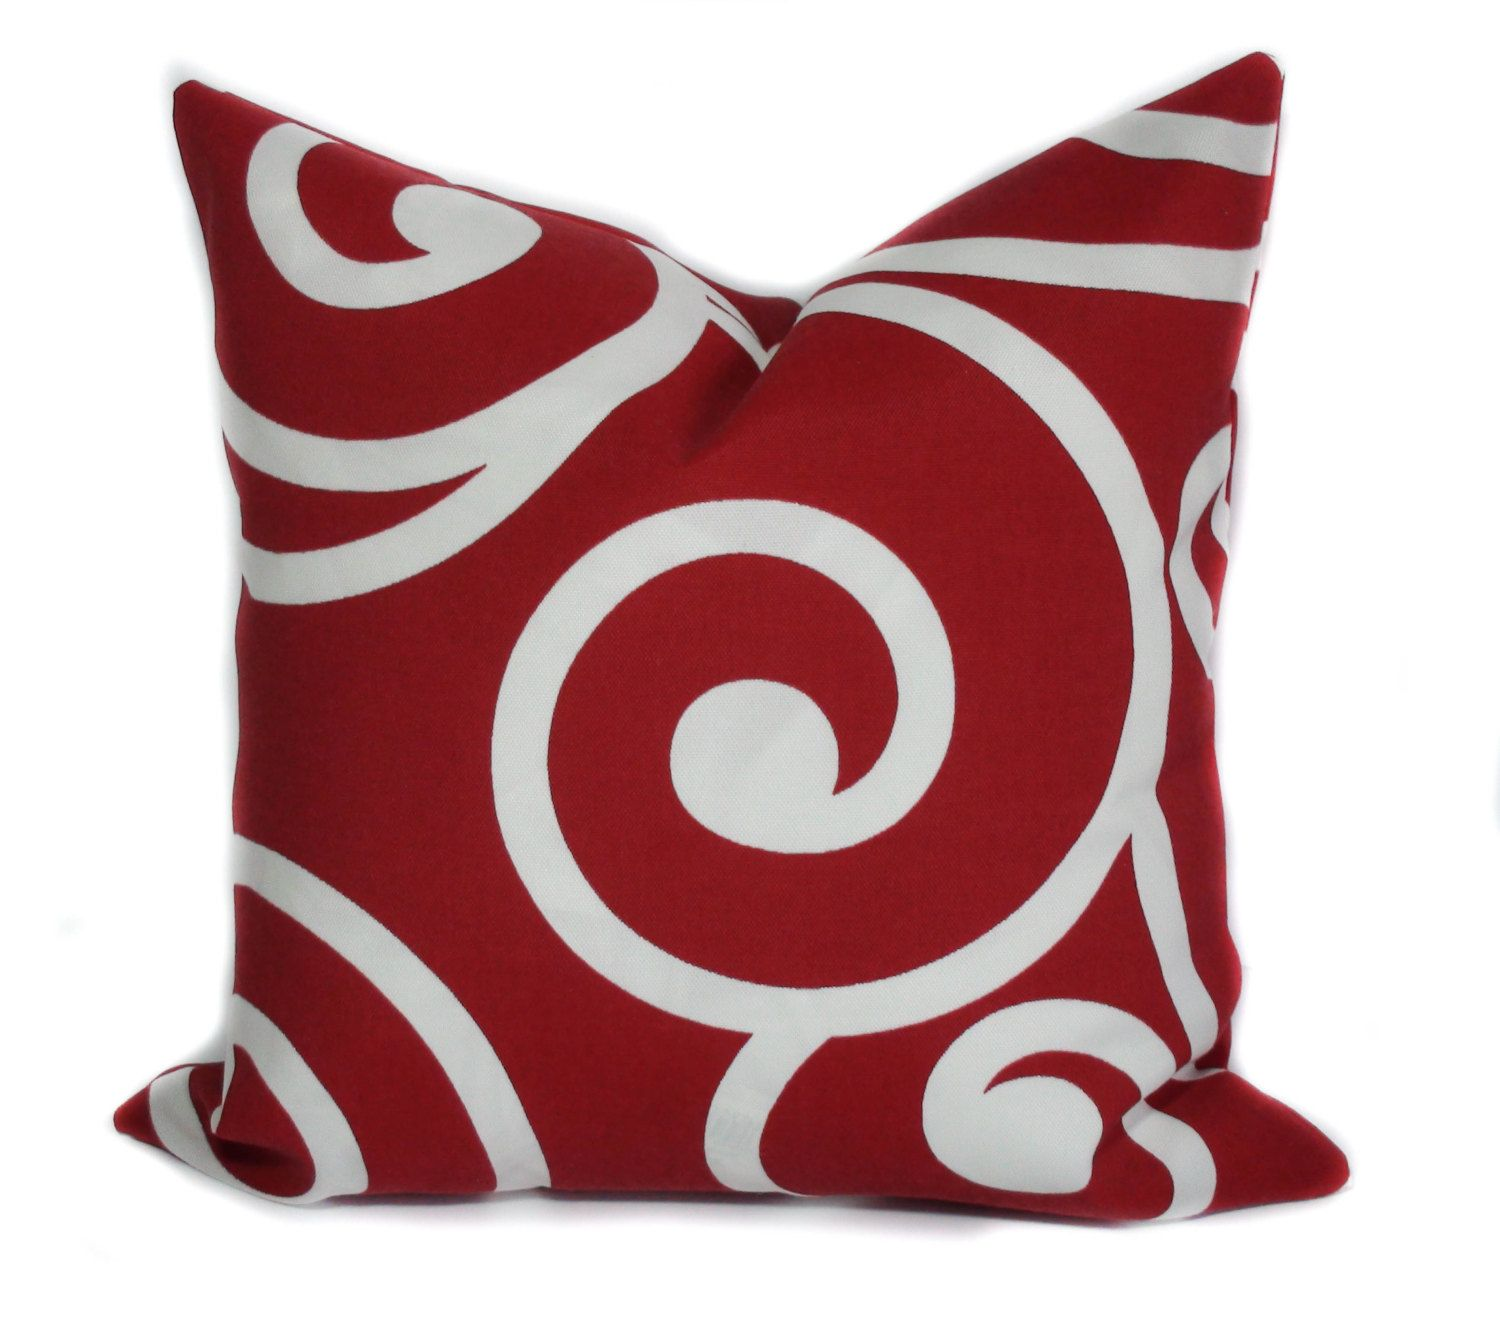 red outdoor pillow cover 16x16 holiday pillow christmas pillow outdoor throw pillows - Christmas Outdoor Pillows